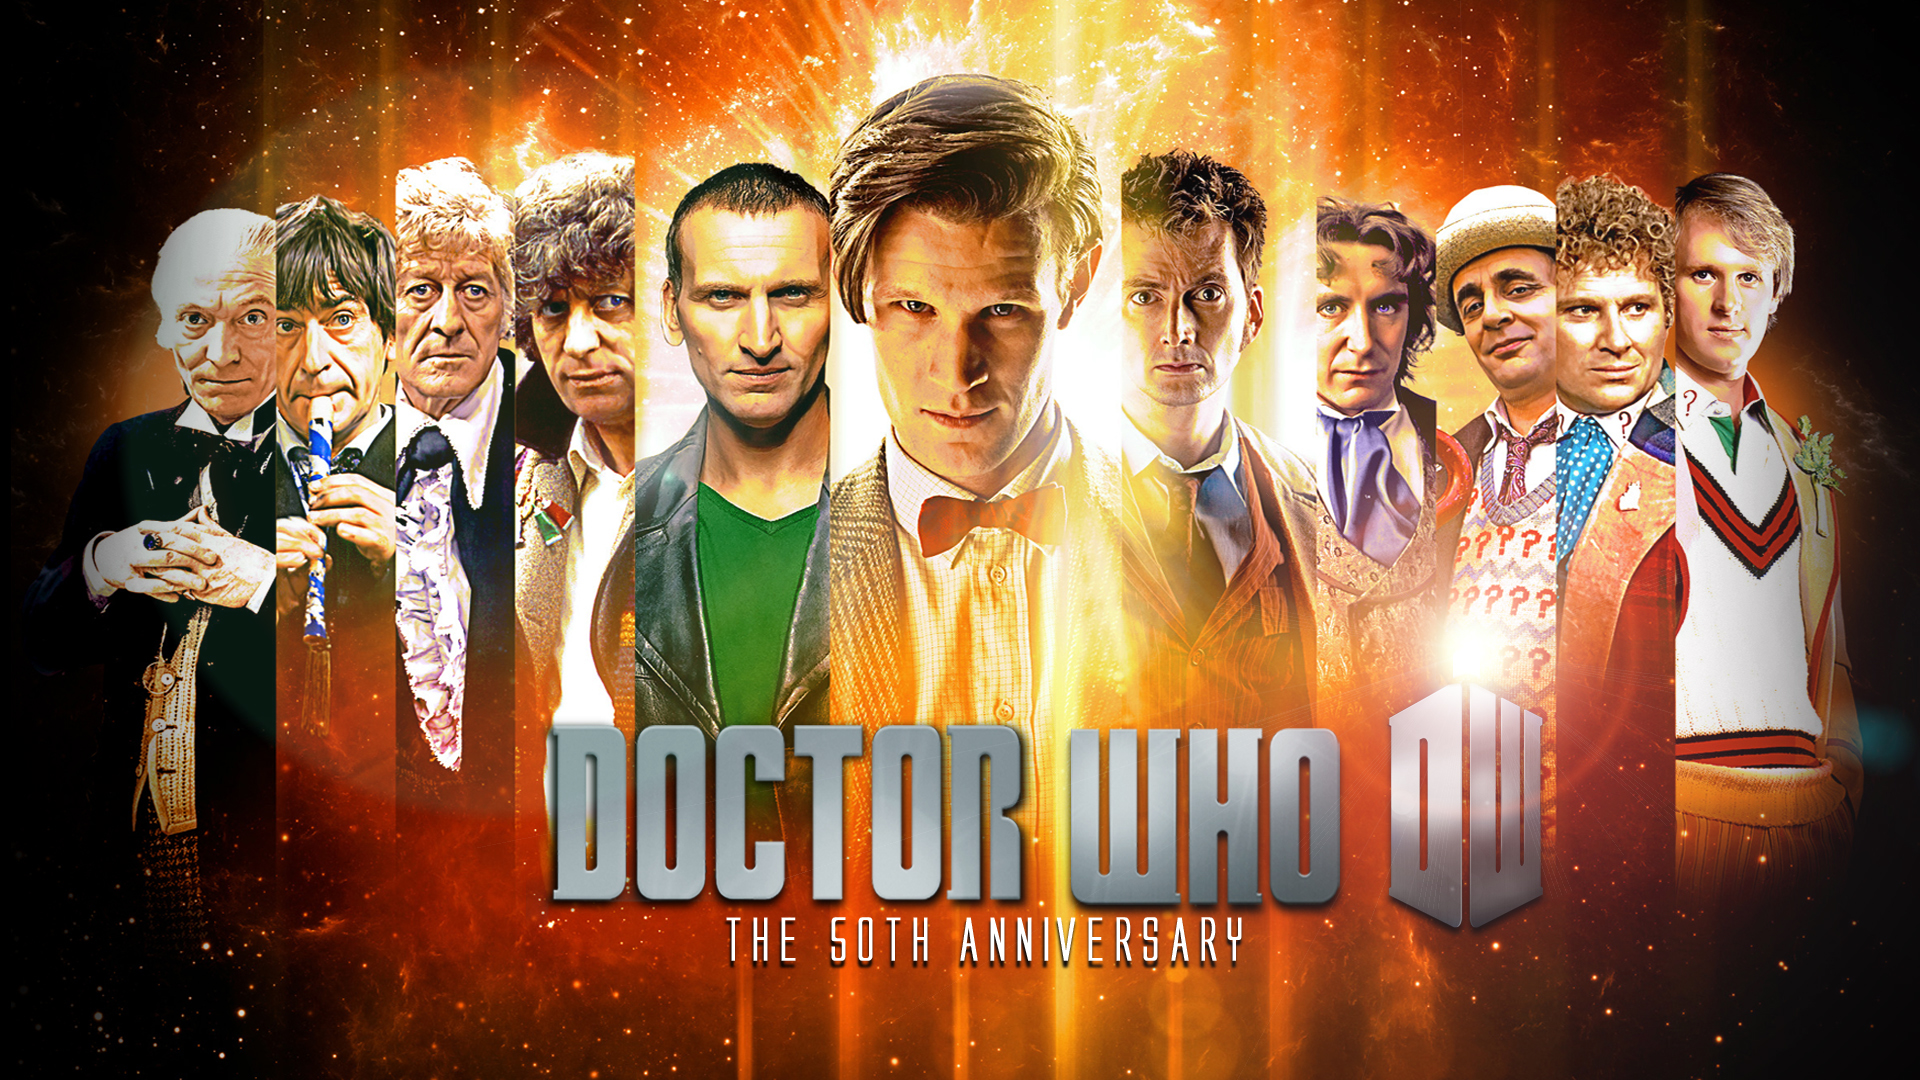 Doctor Who images Doctor Who The 50th Anniversary wallpaper photos 1920x1080